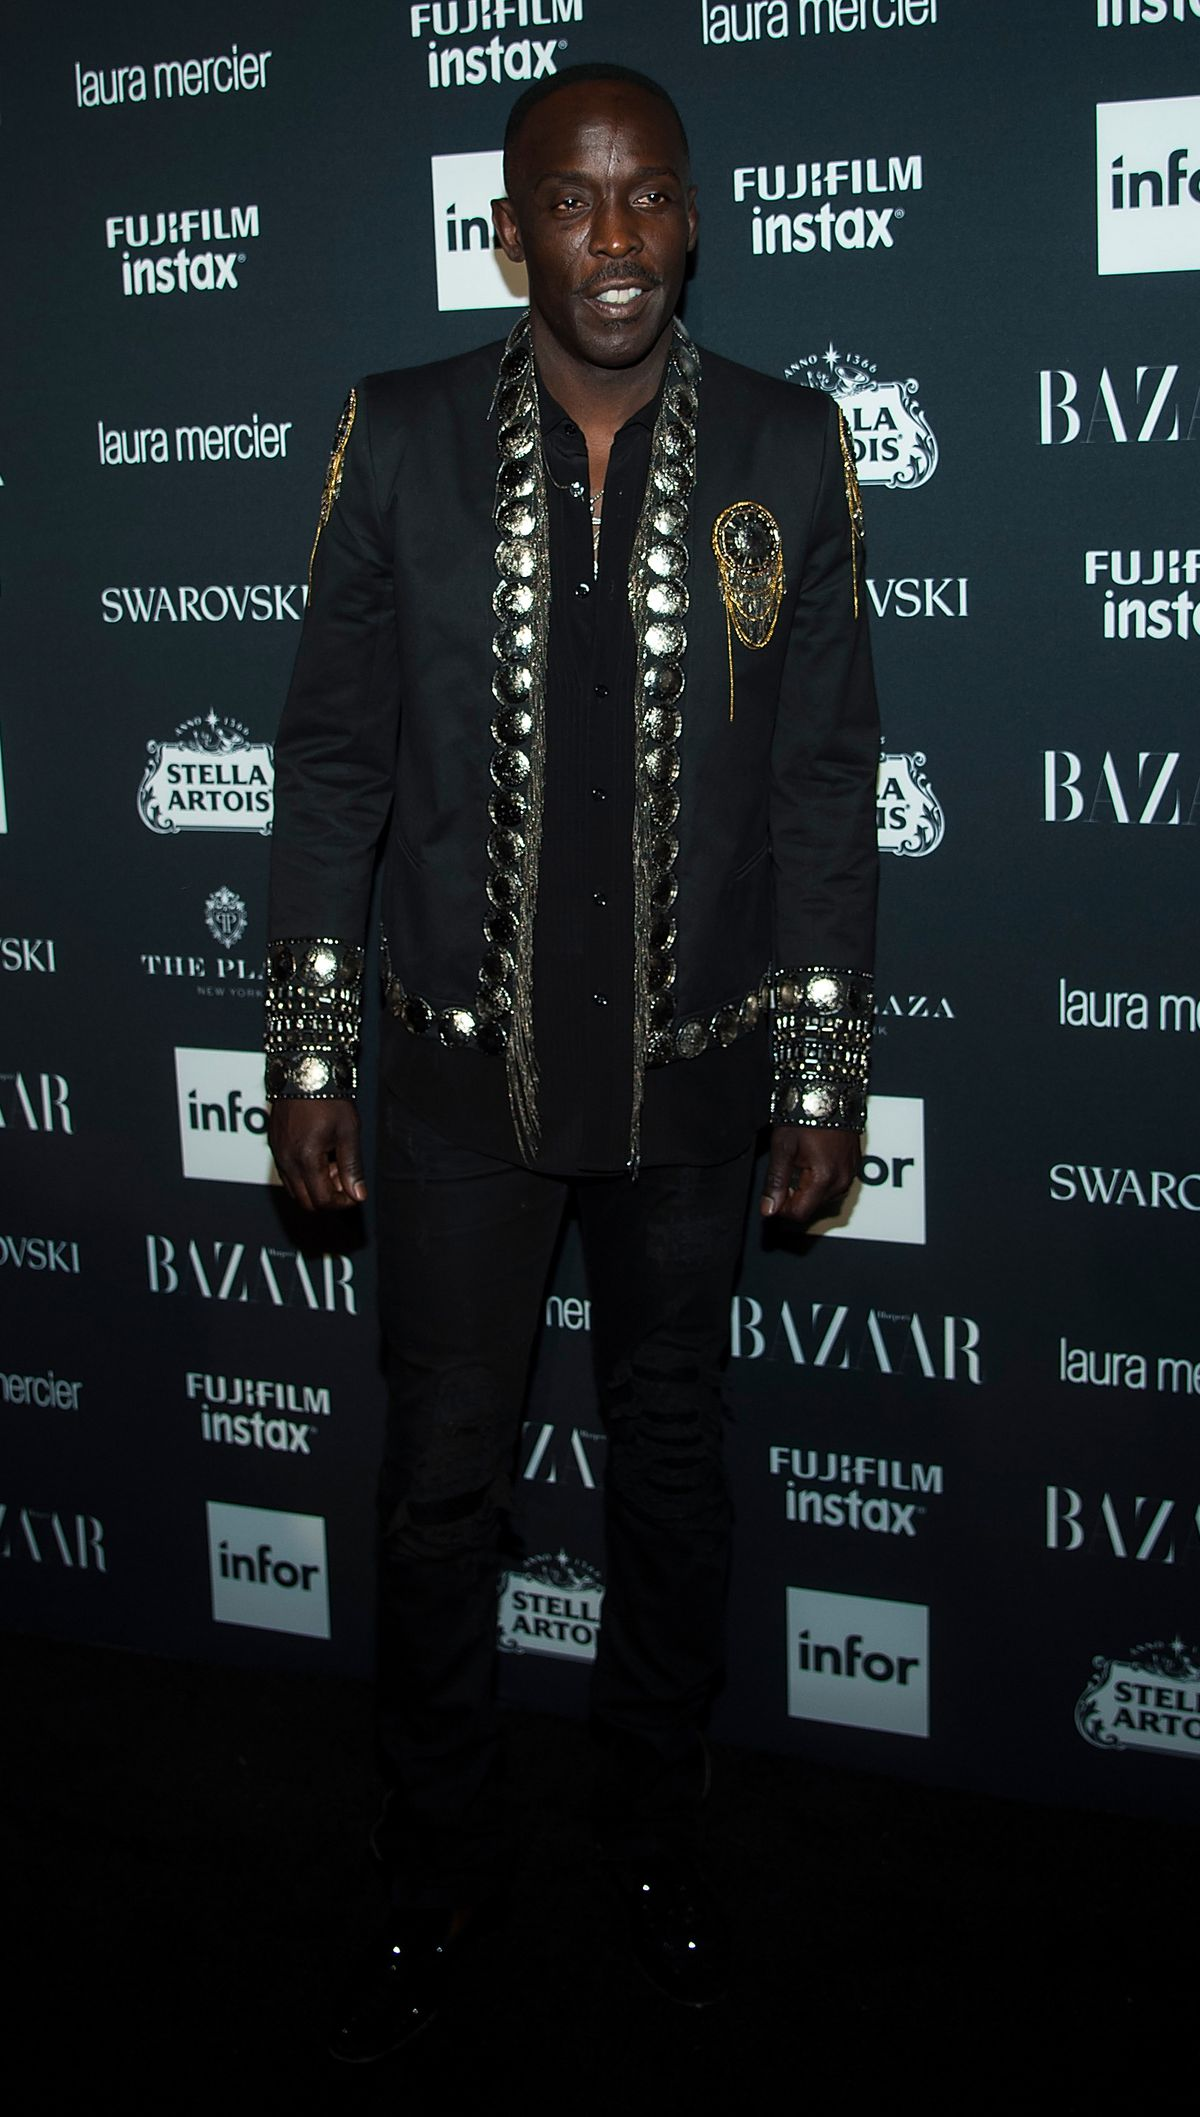 Michael K. Williams attends 2017 Harper's Bazaar Icons at The Plaza Hotel on September 8, 2017 in New York City.